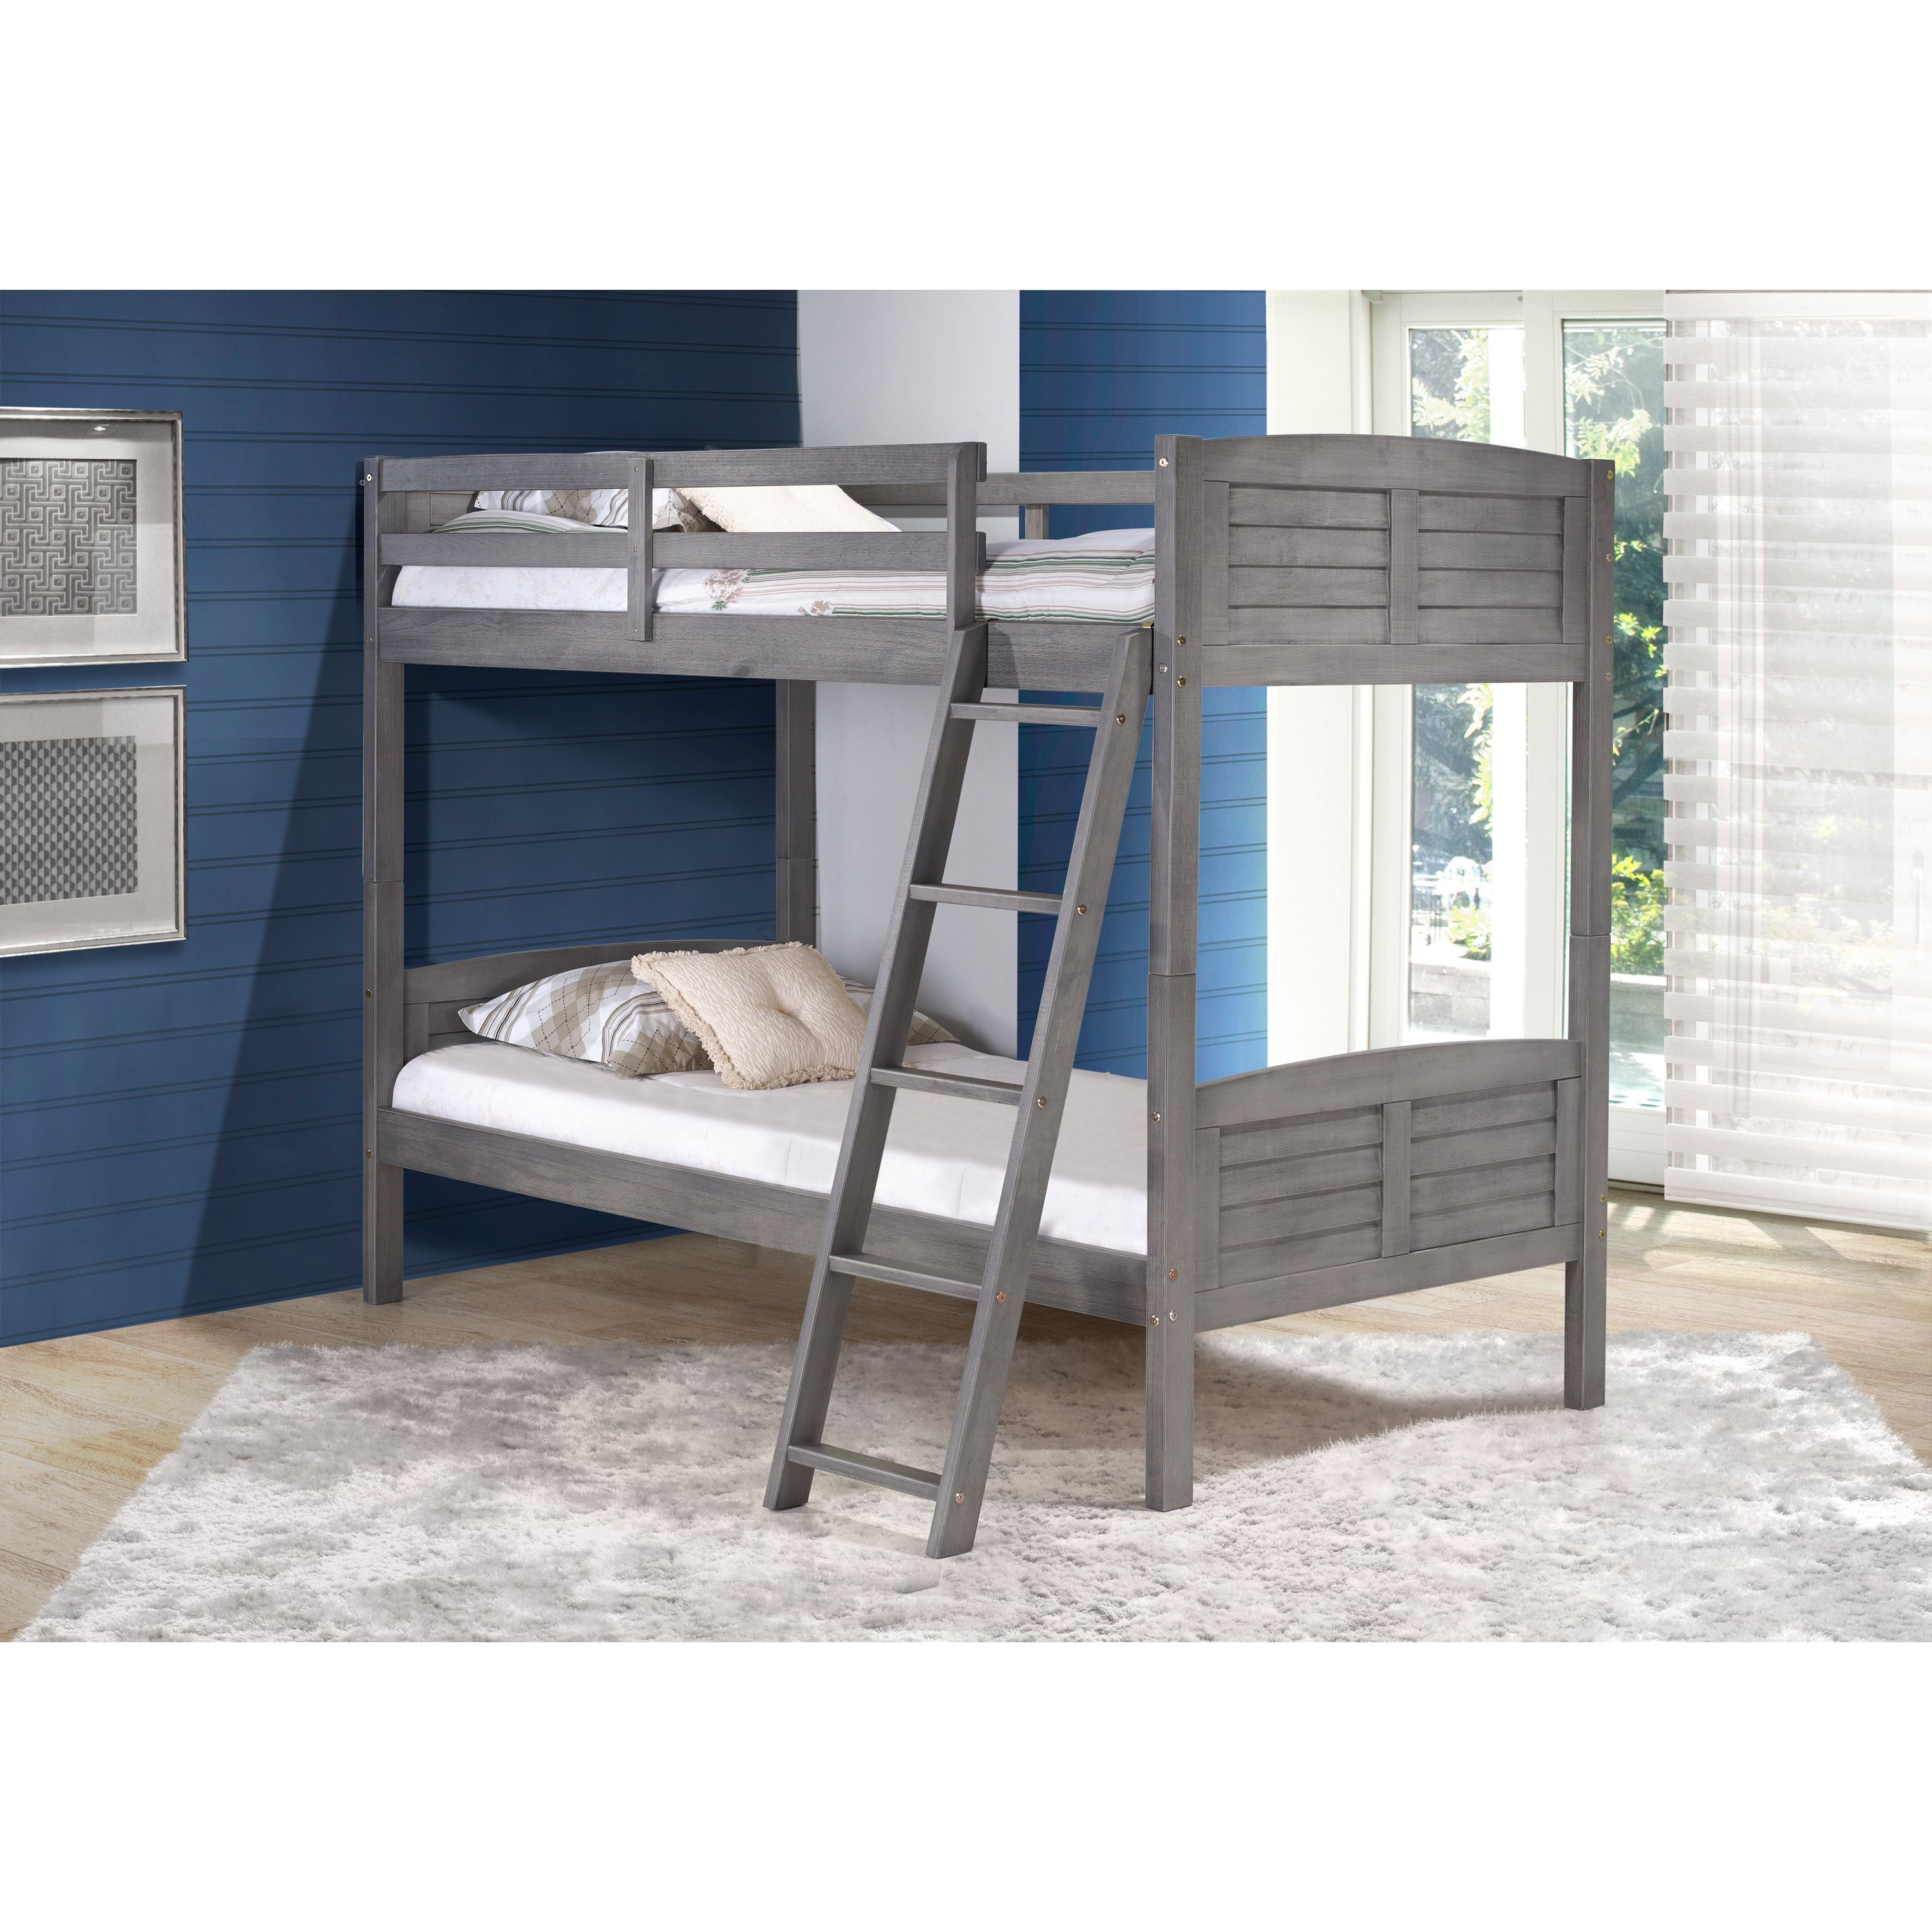 Loft bed with desk on bottom  With a twin bed on bottom and top this Donco Louver Bunk Bed has a